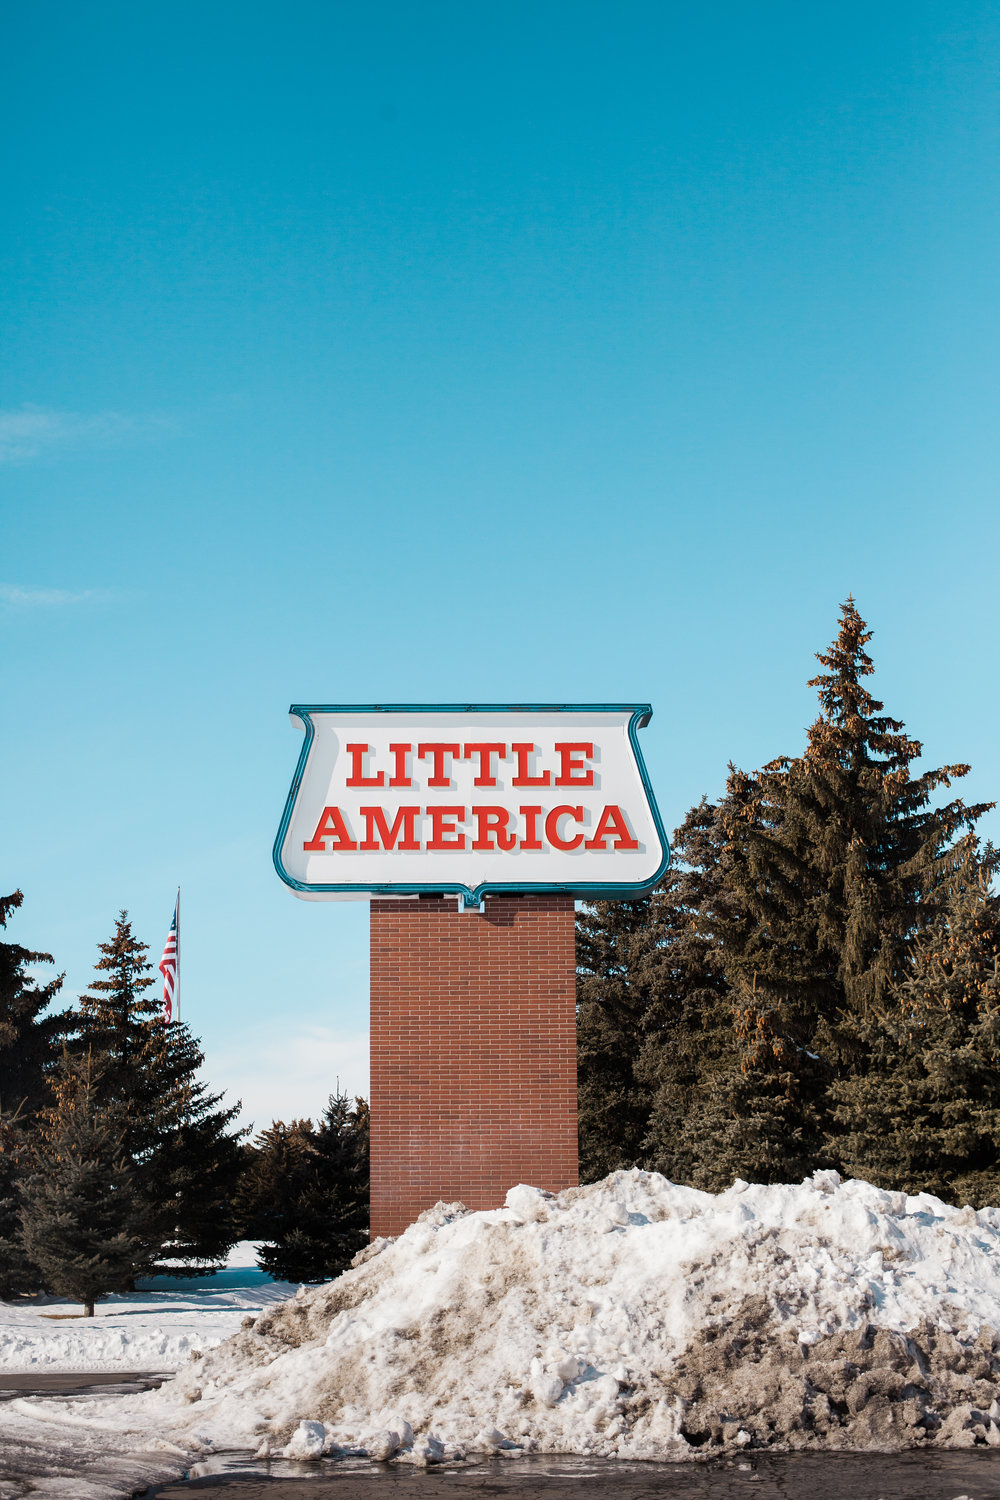 The sign for Little America, a truck stop in Wyoming, where a trucker reminded me of the importance of looking back.